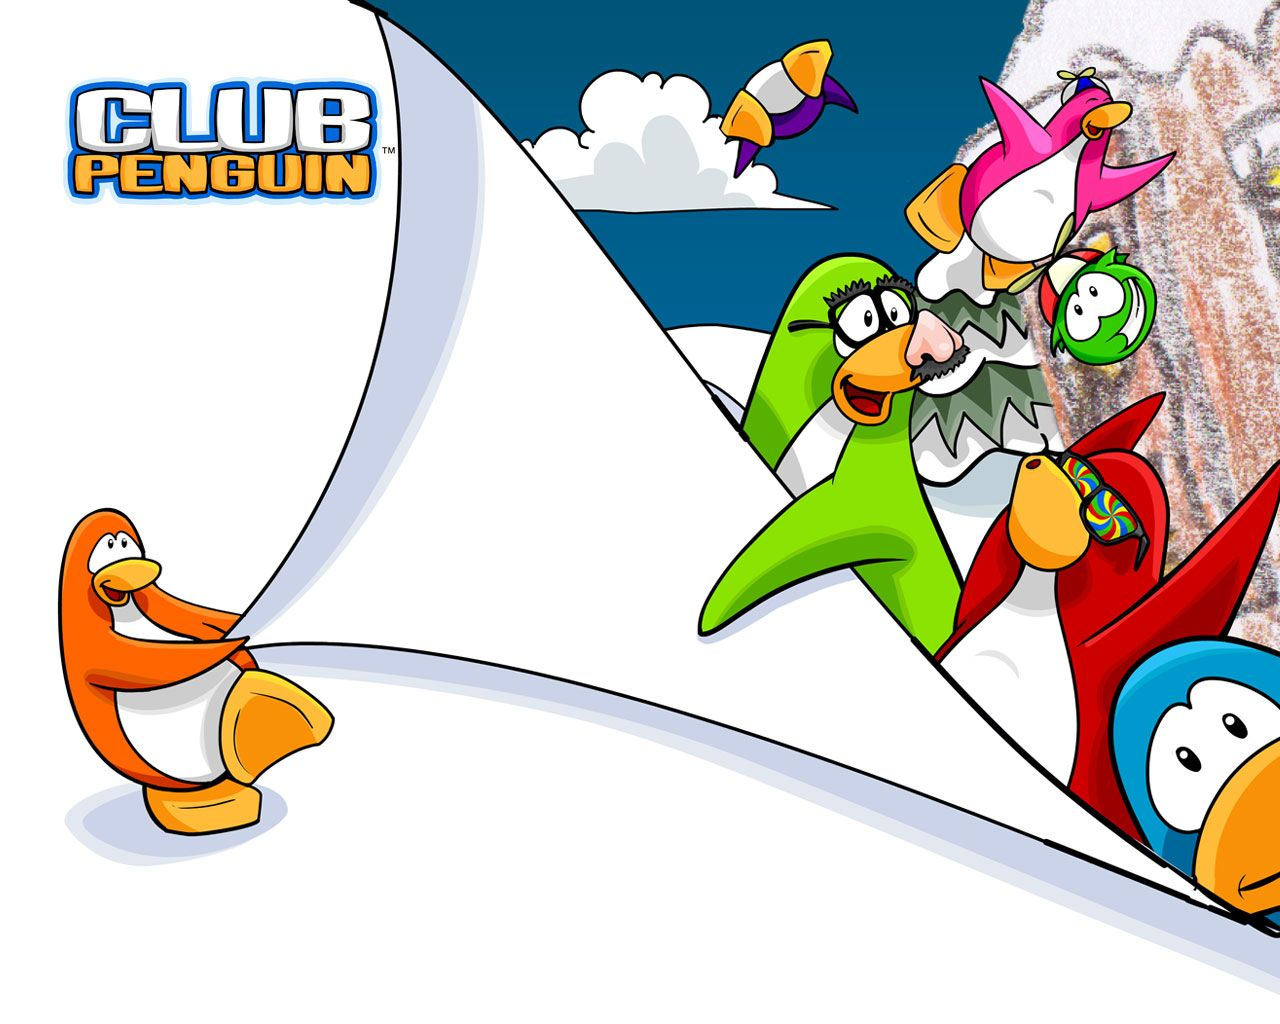 Club Penguin 101 club penguin Club penguin Penguins 1280x1024